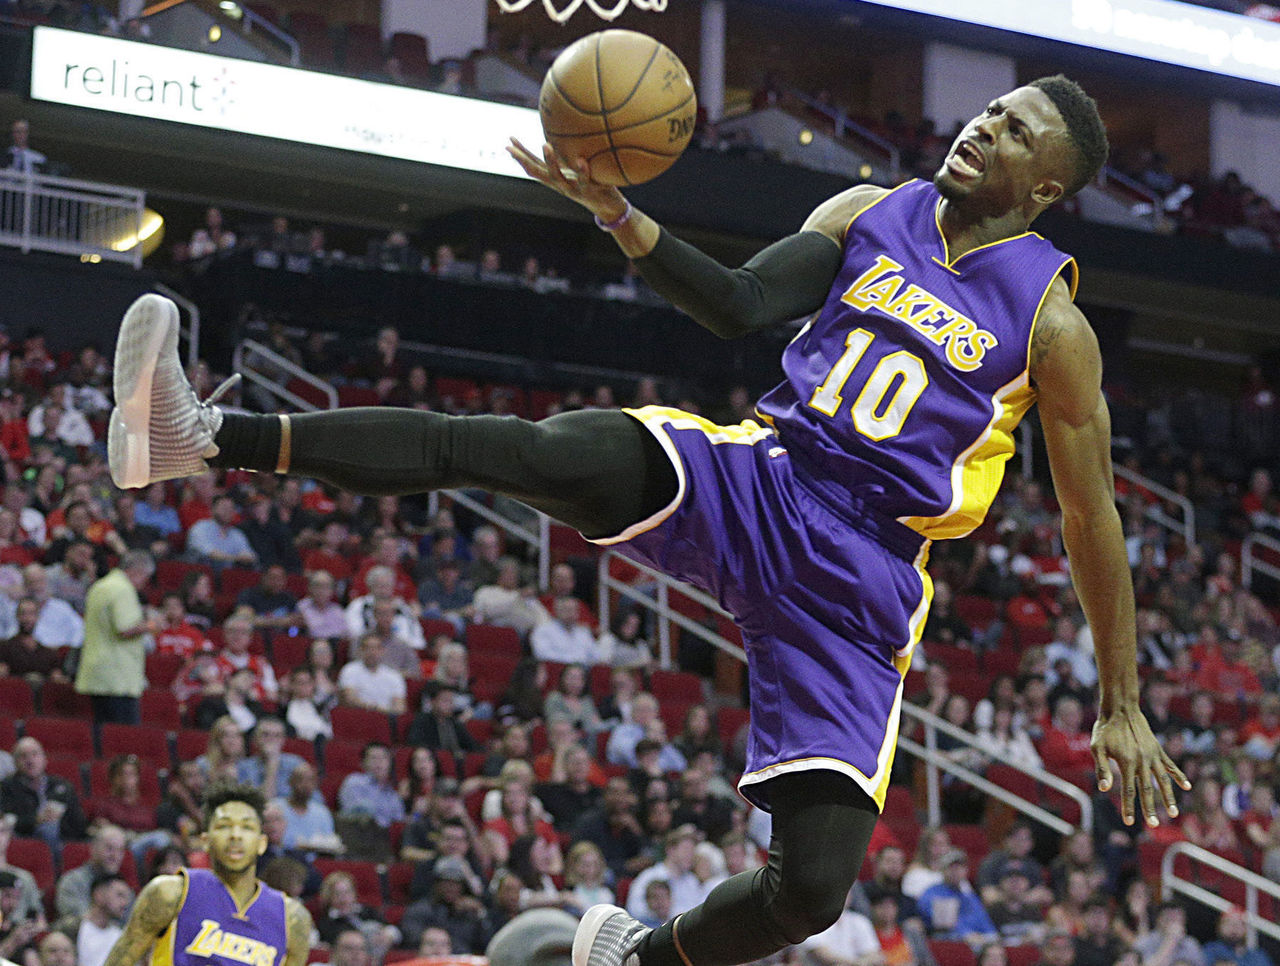 Cropped 2017 03 16t025427z 760476764 nocid rtrmadp 3 nba los angeles lakers at houston rockets